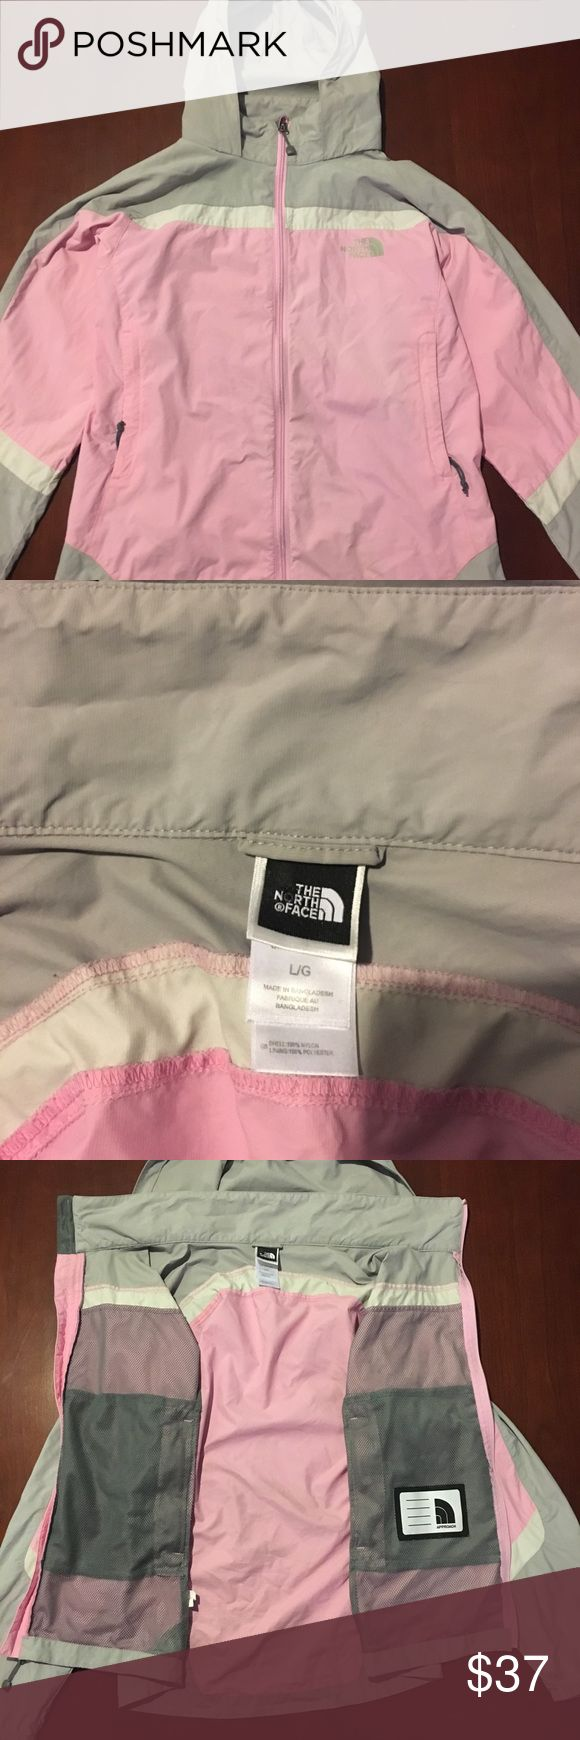 NORTHFACE HYDRENALITE WINDBREAKER!!! This north face windbreaker is in great condition! It has a minor stain in the back that is extremely unnoticeable, other than that it is in perfect condition. It is easy to wear, and layer, contains many pockets and compartments, and it is waterproof! North Face Jackets & Coats